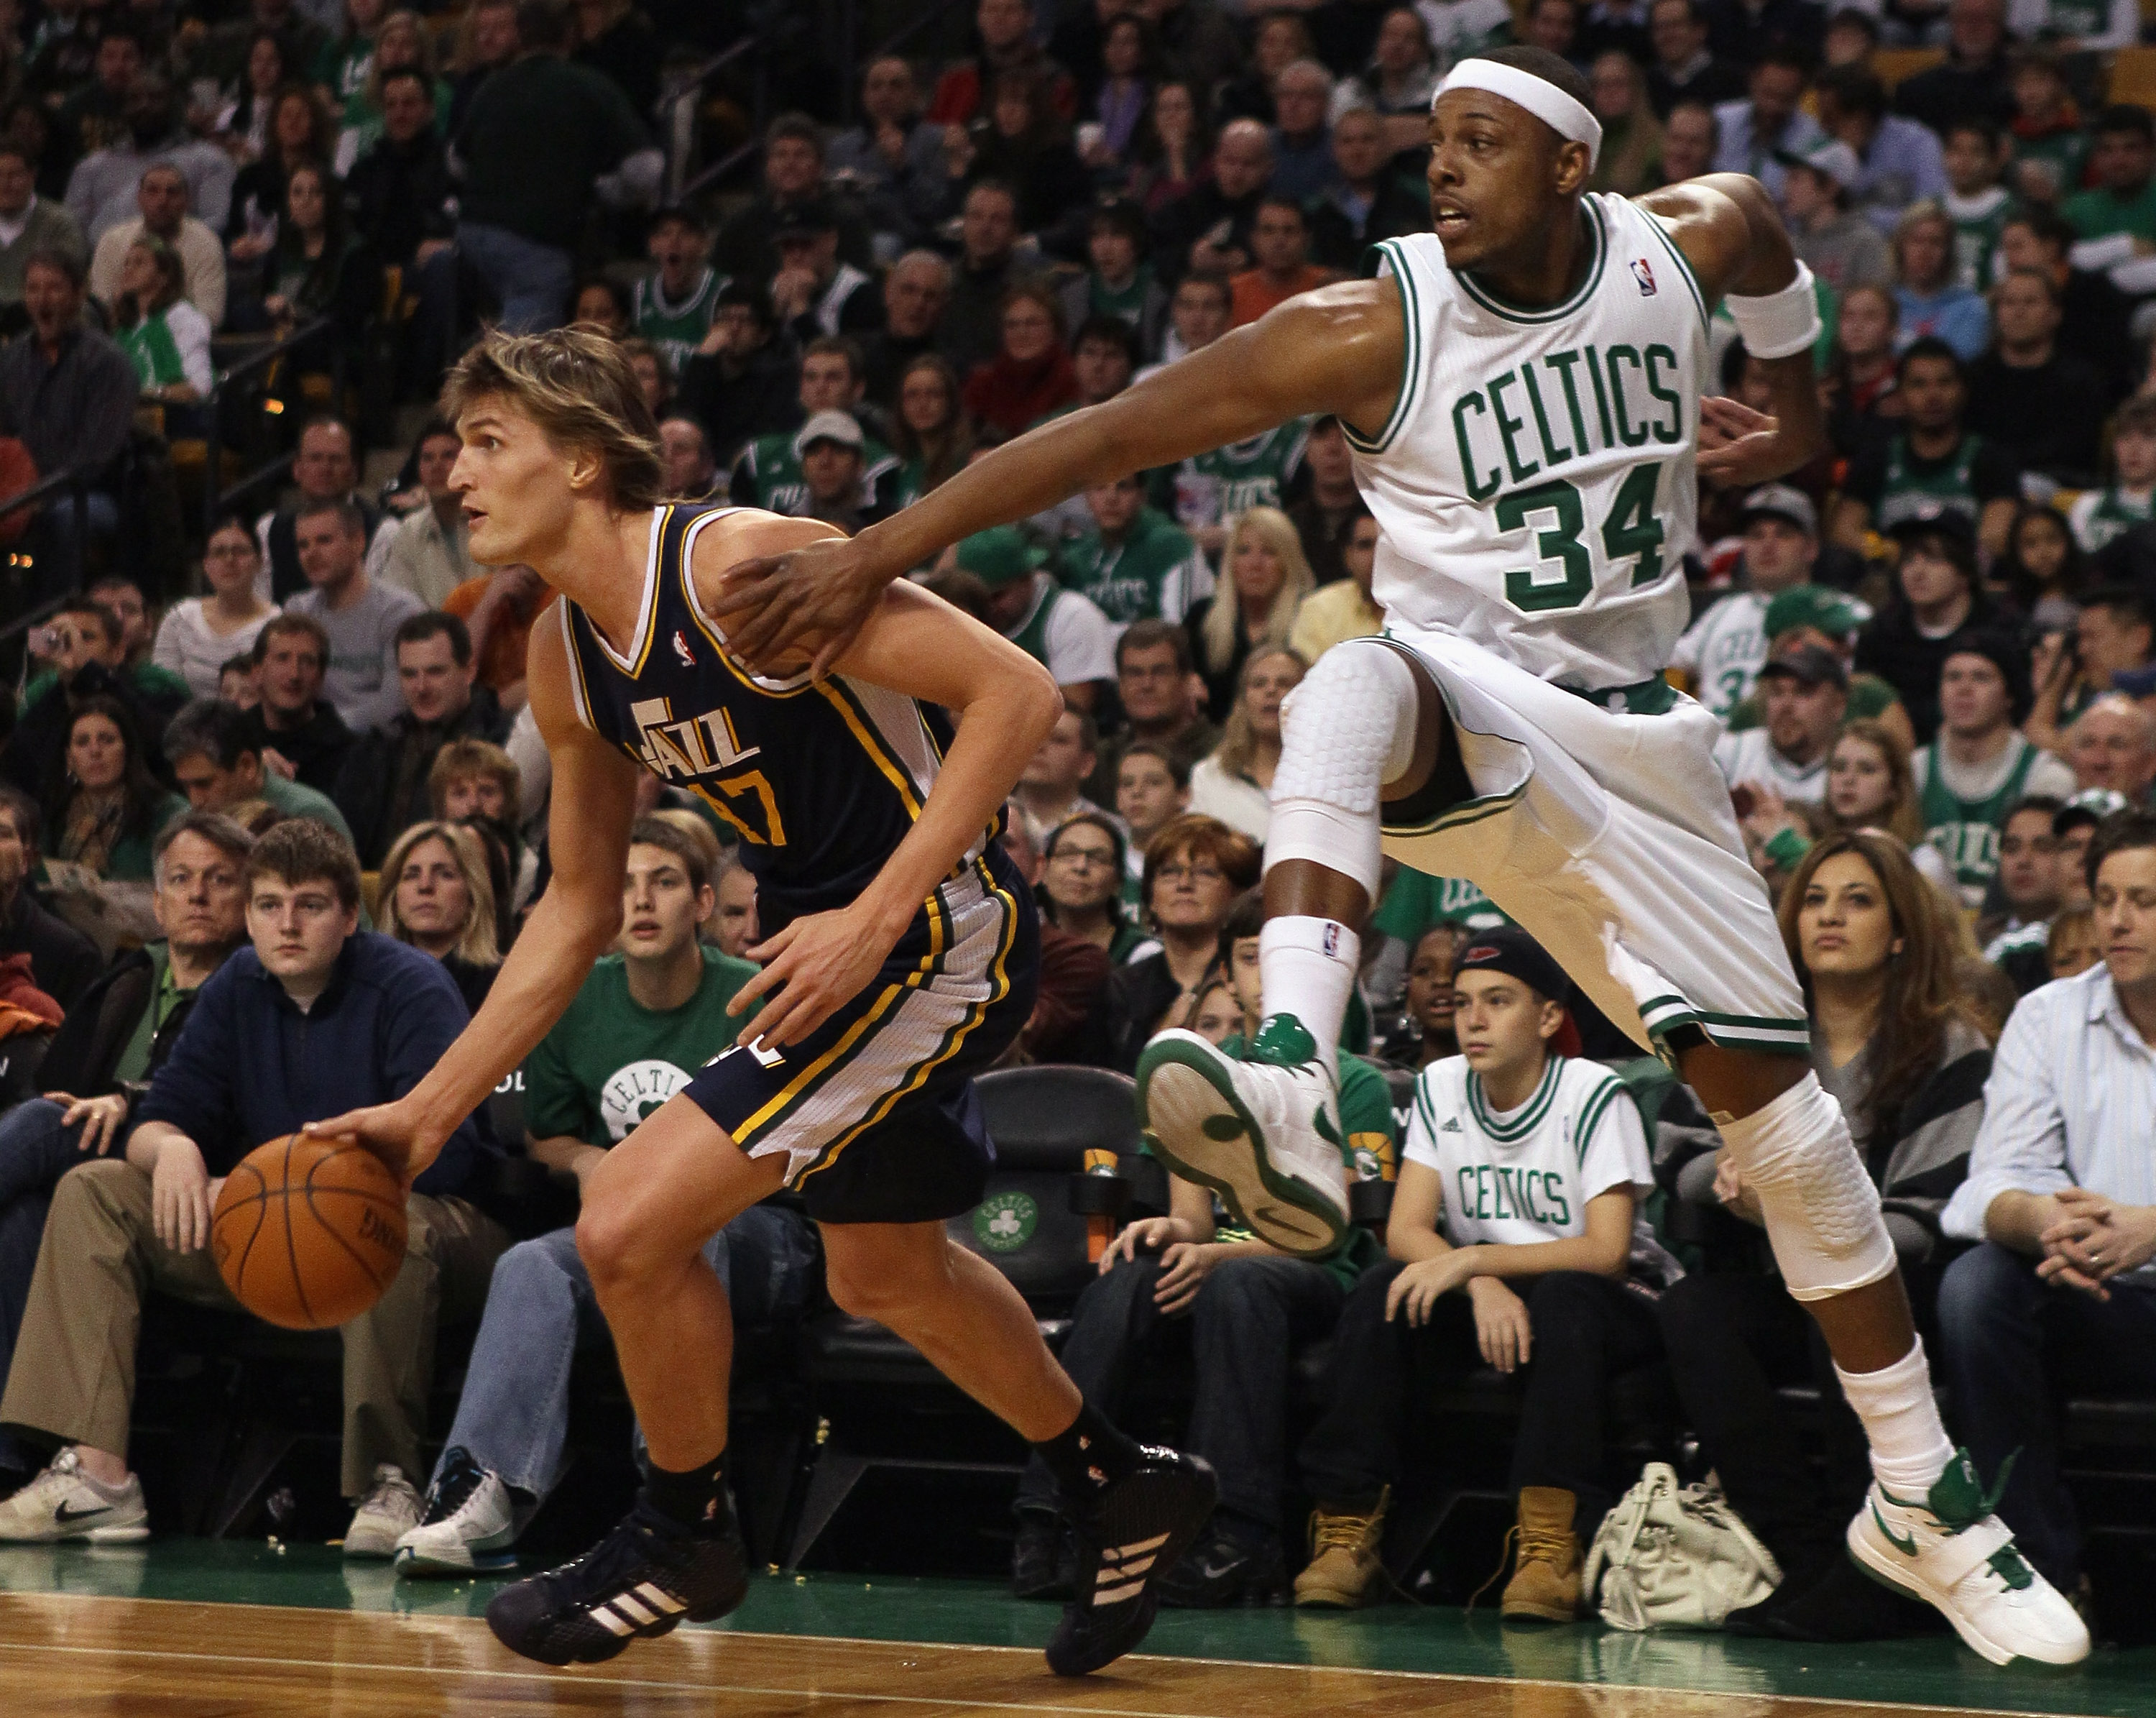 BOSTON, MA - JANUARY 21:  Andrei Kirilenko #47 of the Utah Jazz tries to keep the ball as Paul Pierce #34 of the Boston Celtics jumps to block on January 21, 2011 at the TD Garden in Boston, Massachusetts.  NOTE TO USER: User expressly acknowledges and ag